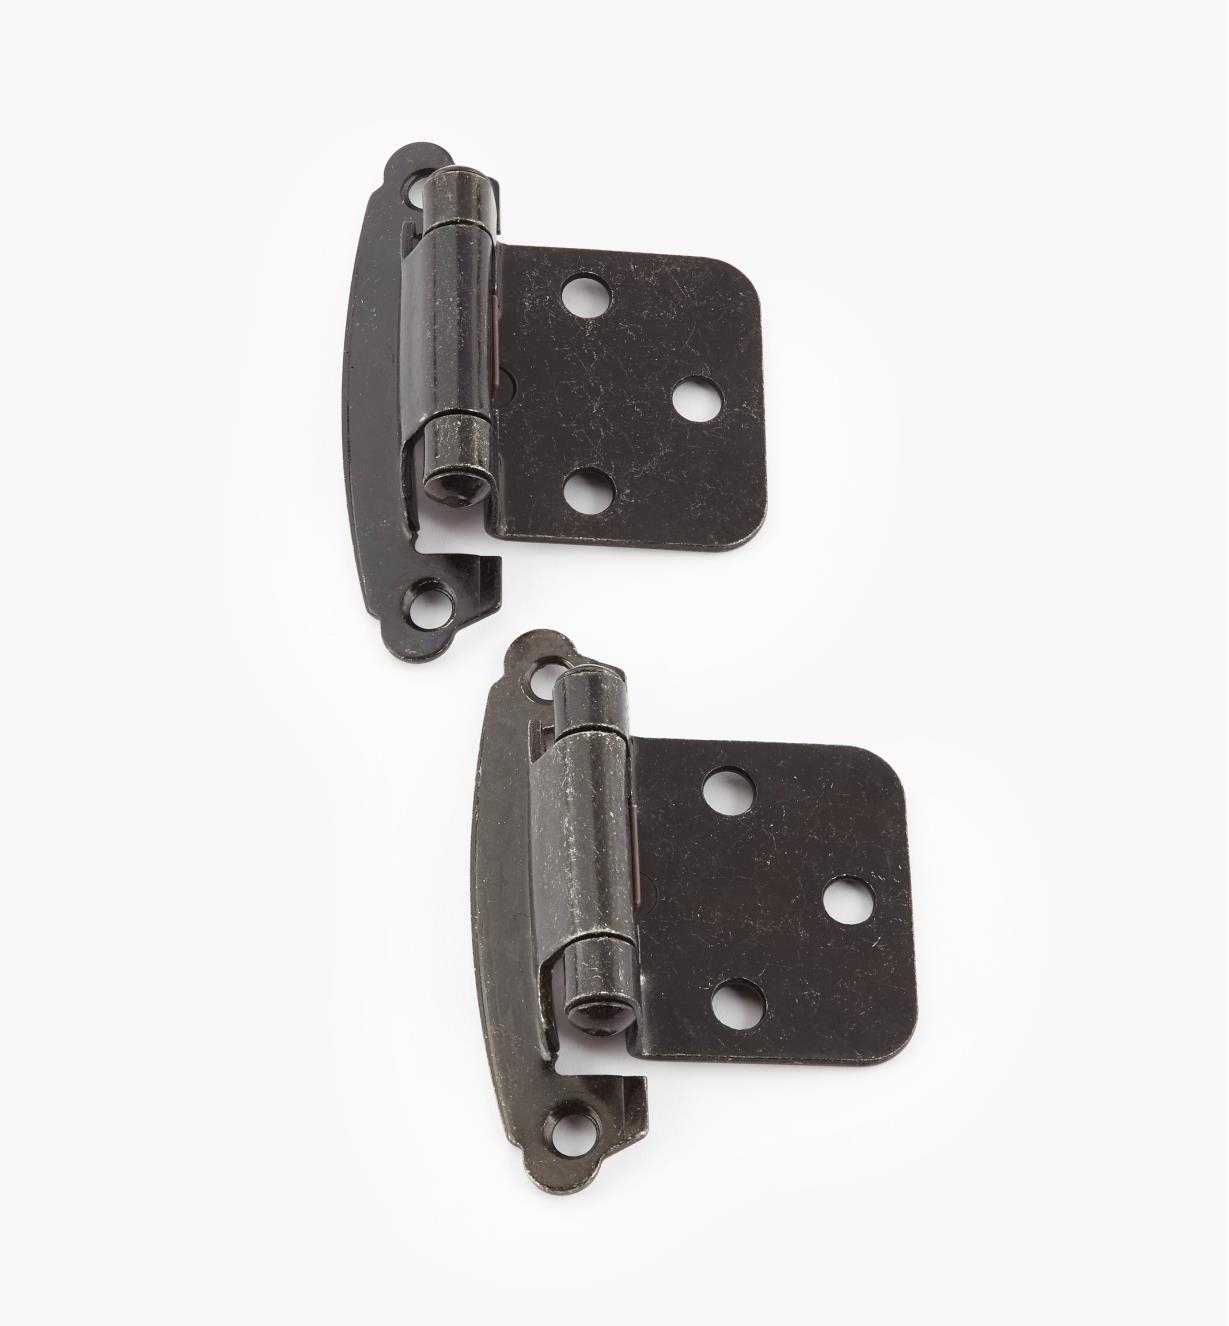 02H1376 - Pewter Flush-Mount Self-Closing Hinge, Pair